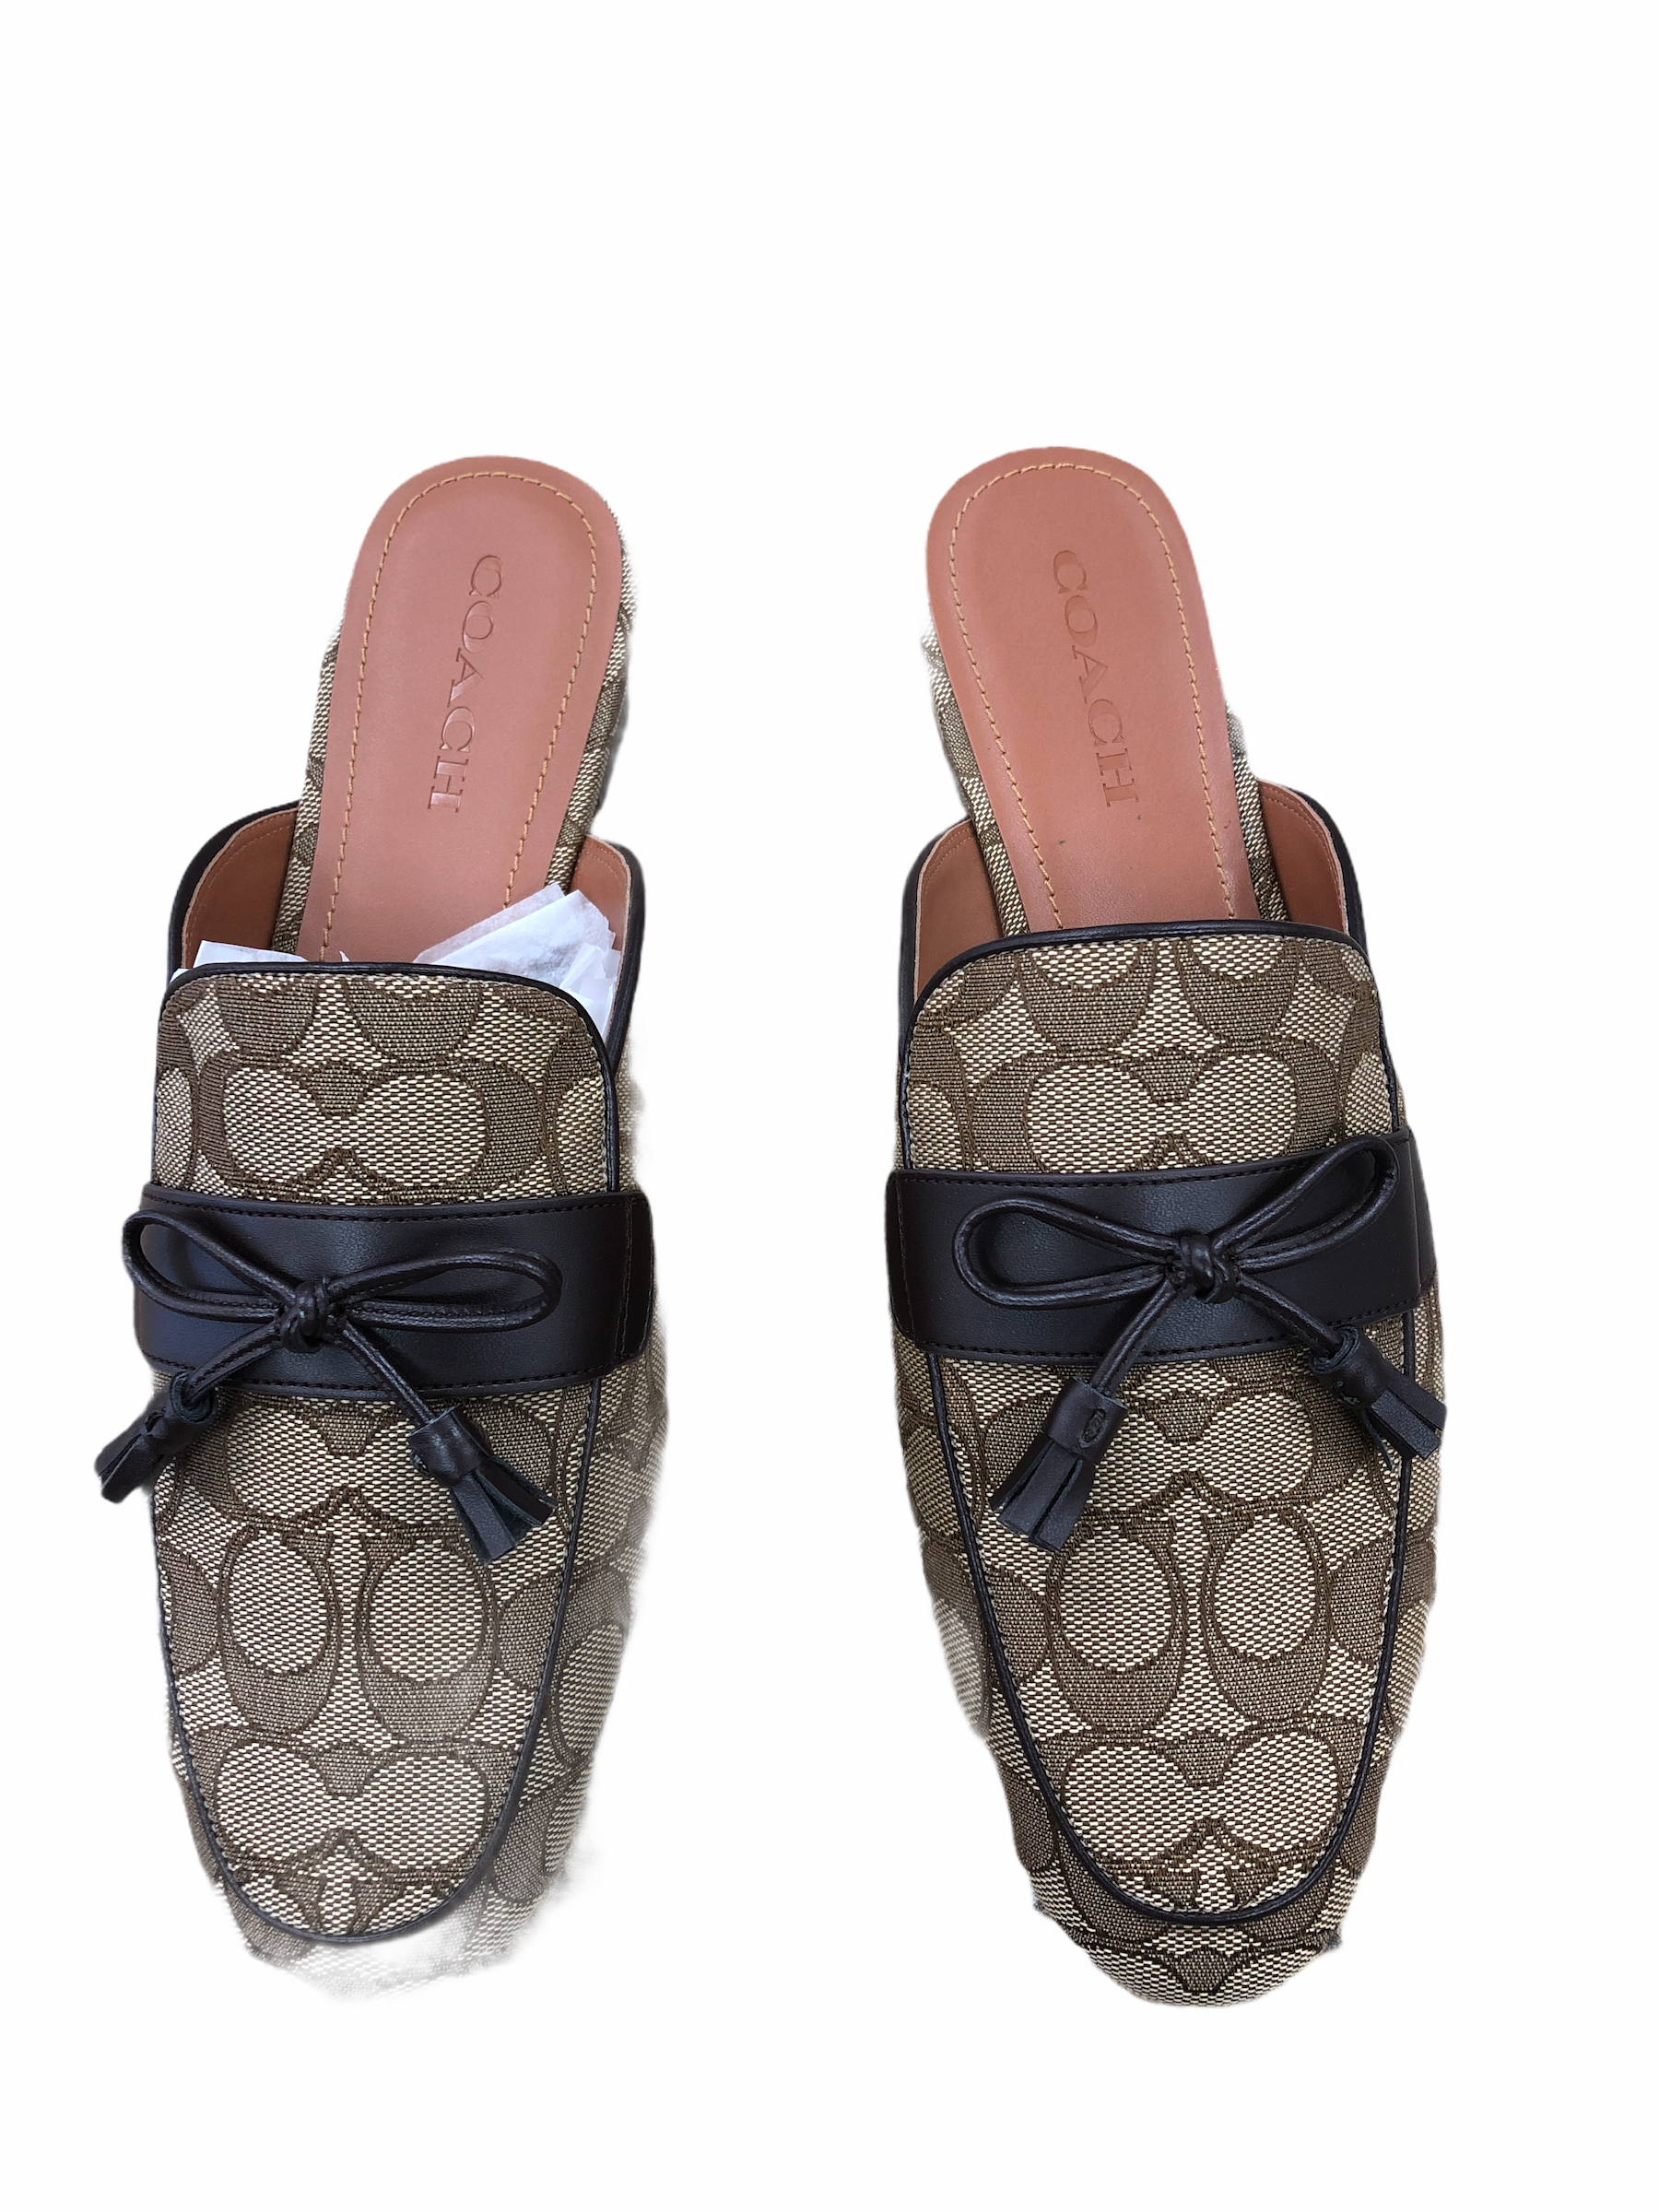 Primary Photo - brand: coach , style: sandals flat , color: brown , size: 11 , sku: 267-26790-14985